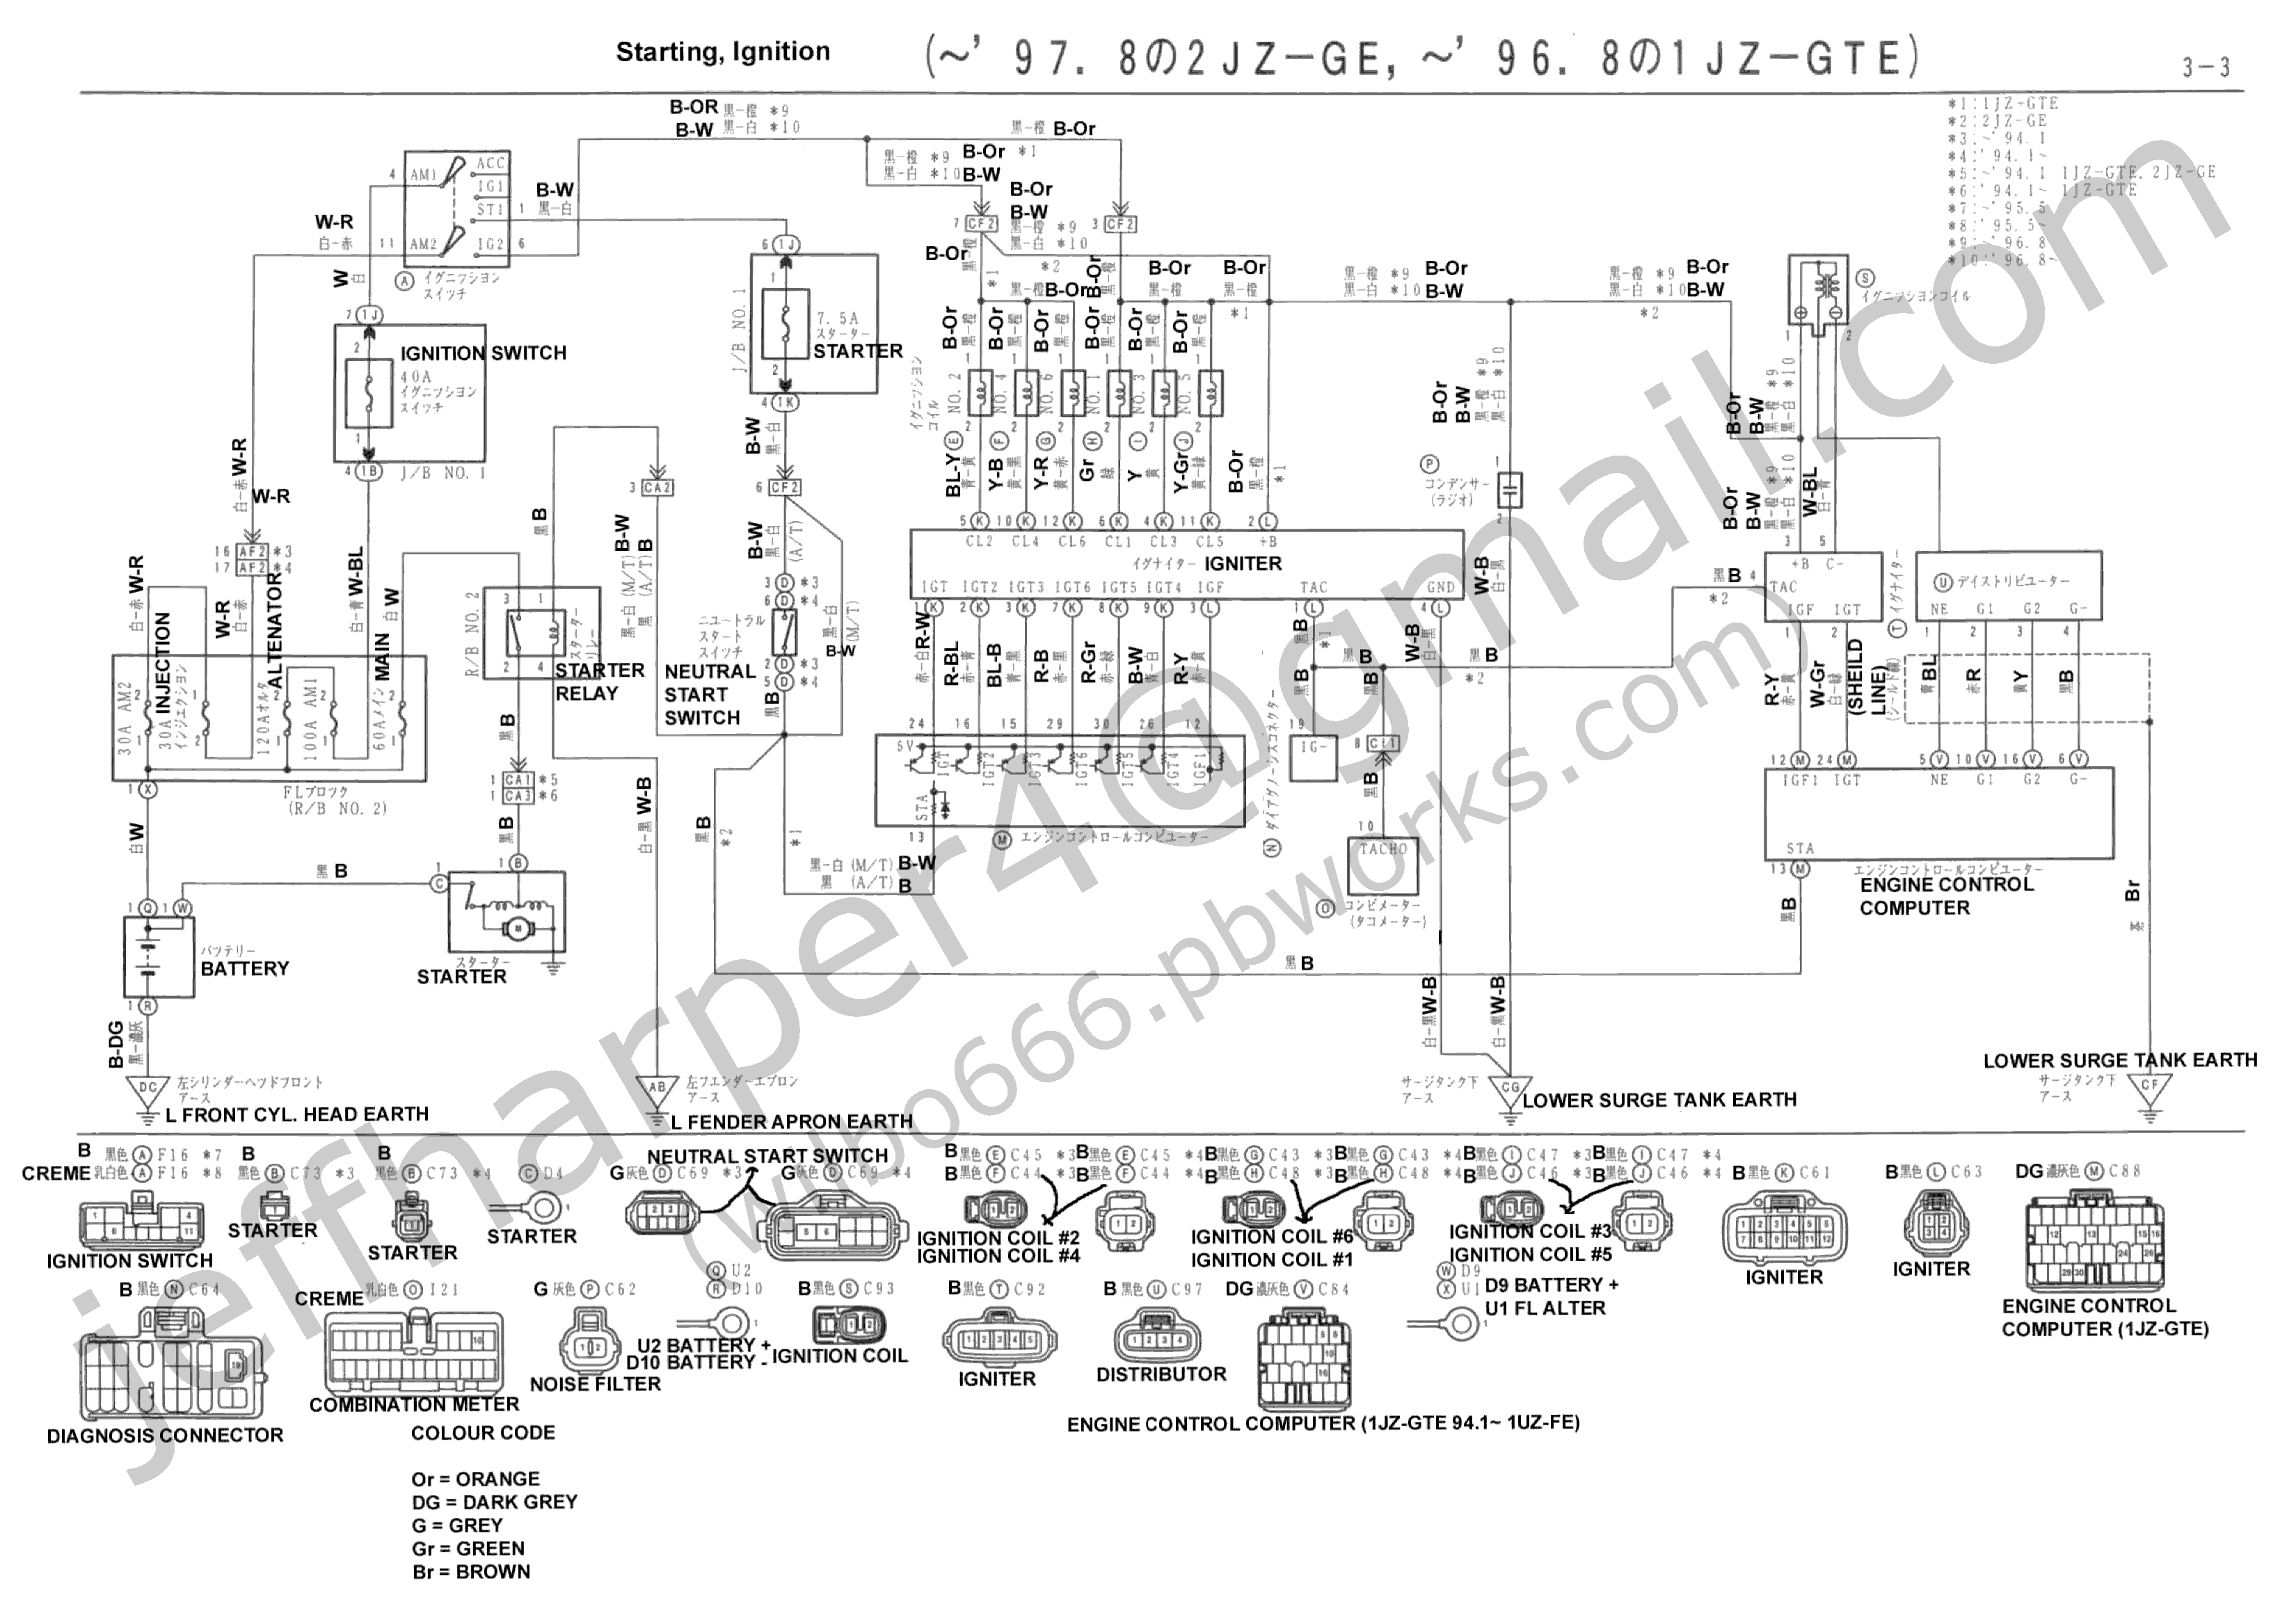 medium resolution of 1jz wiring harness diagram 1jz circuit diagrams blog wiring diagram 1jz motor wiring 1jz circuit diagrams